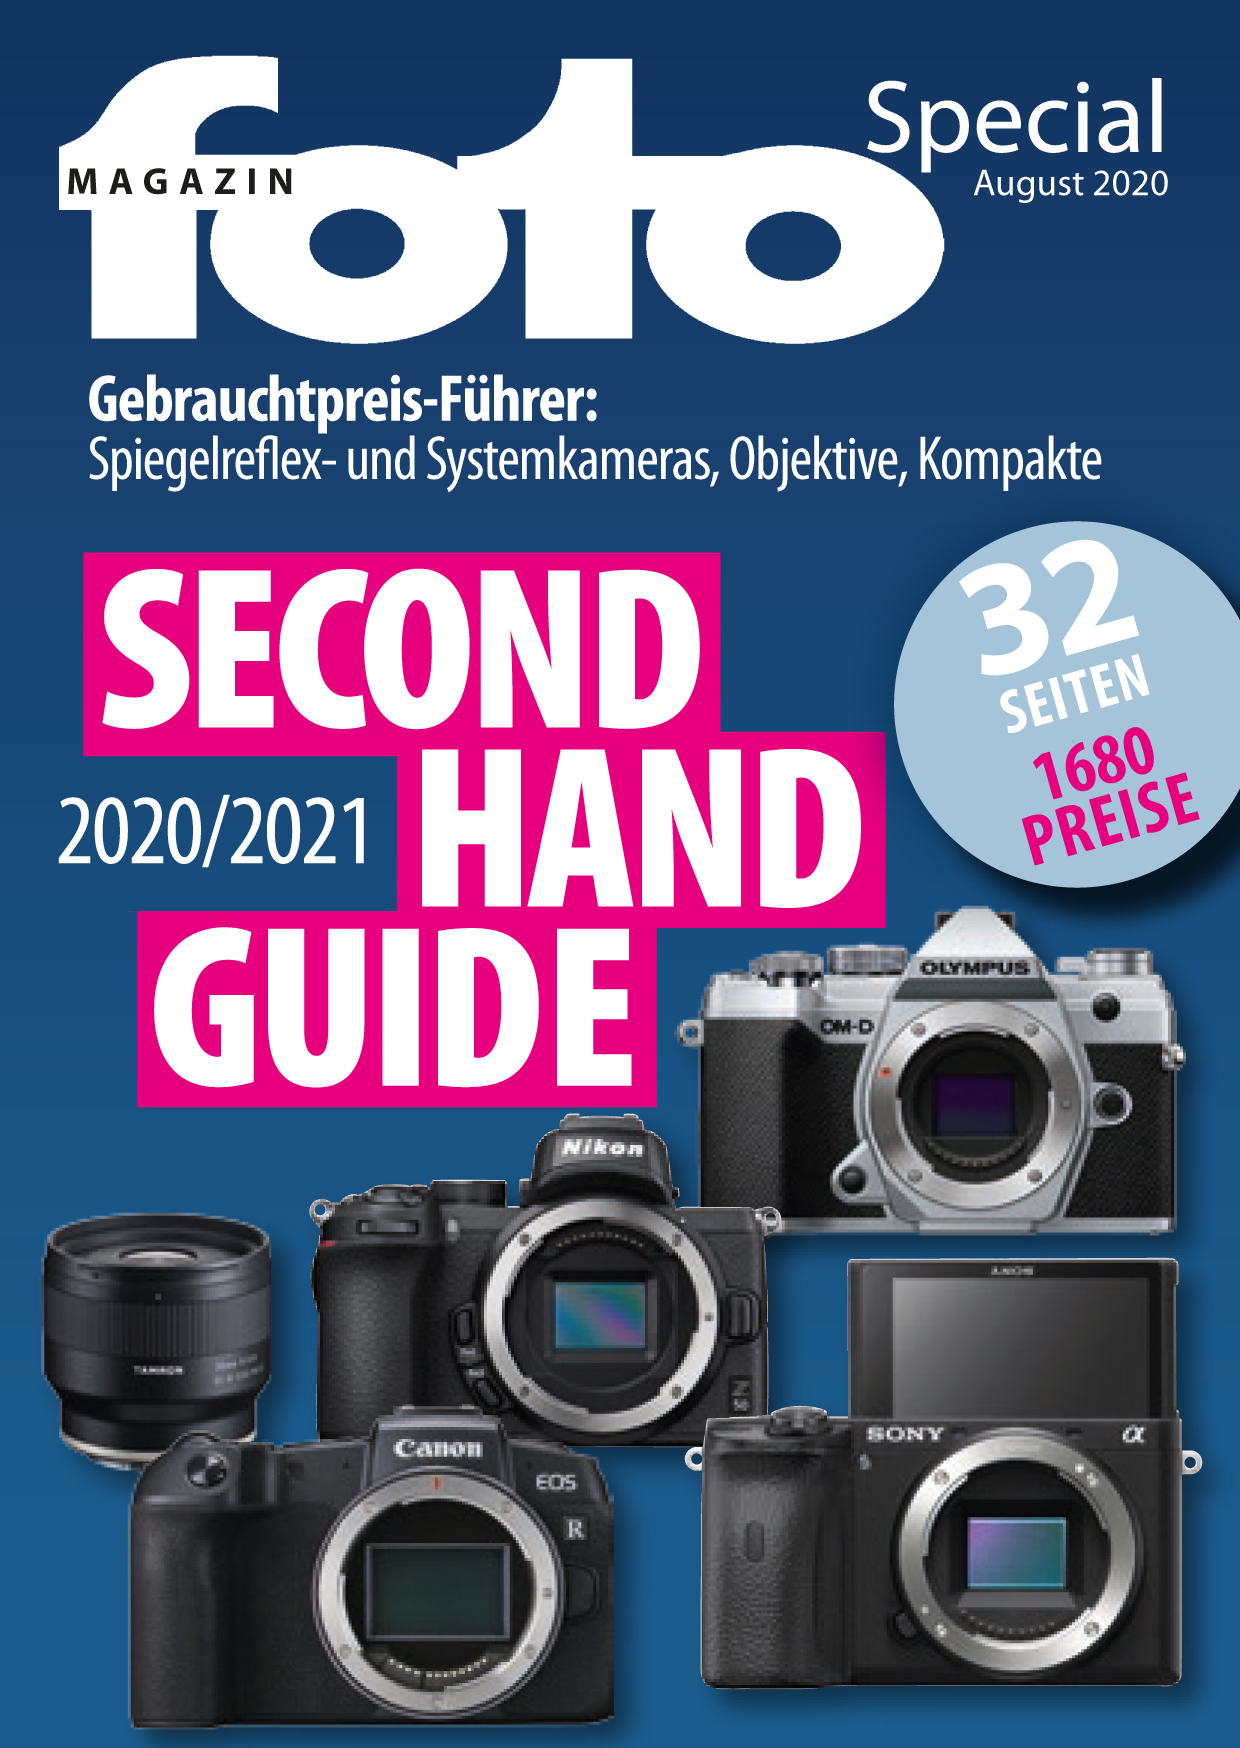 Secondhand Guide 2020/2021